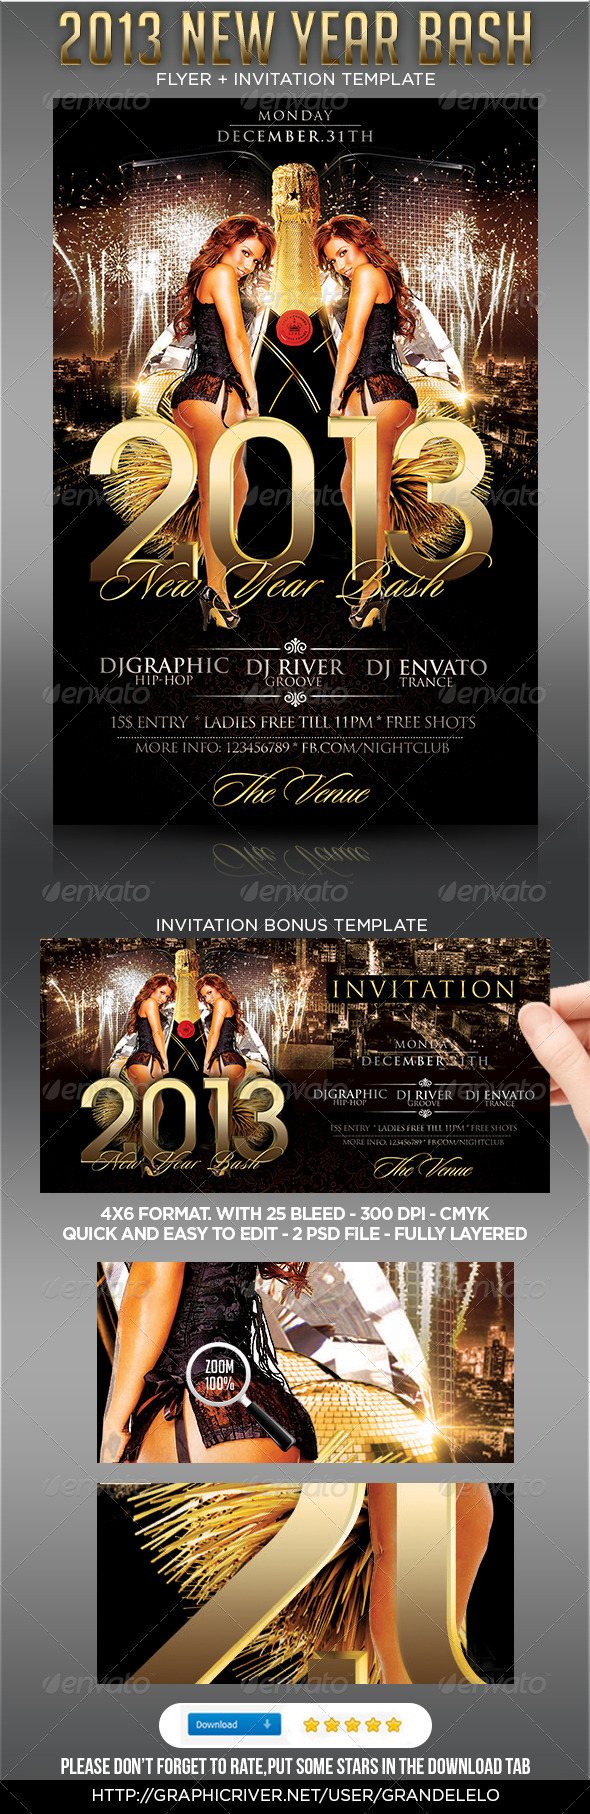 2013 New Year Party Flyer Template - Clubs & Parties Events